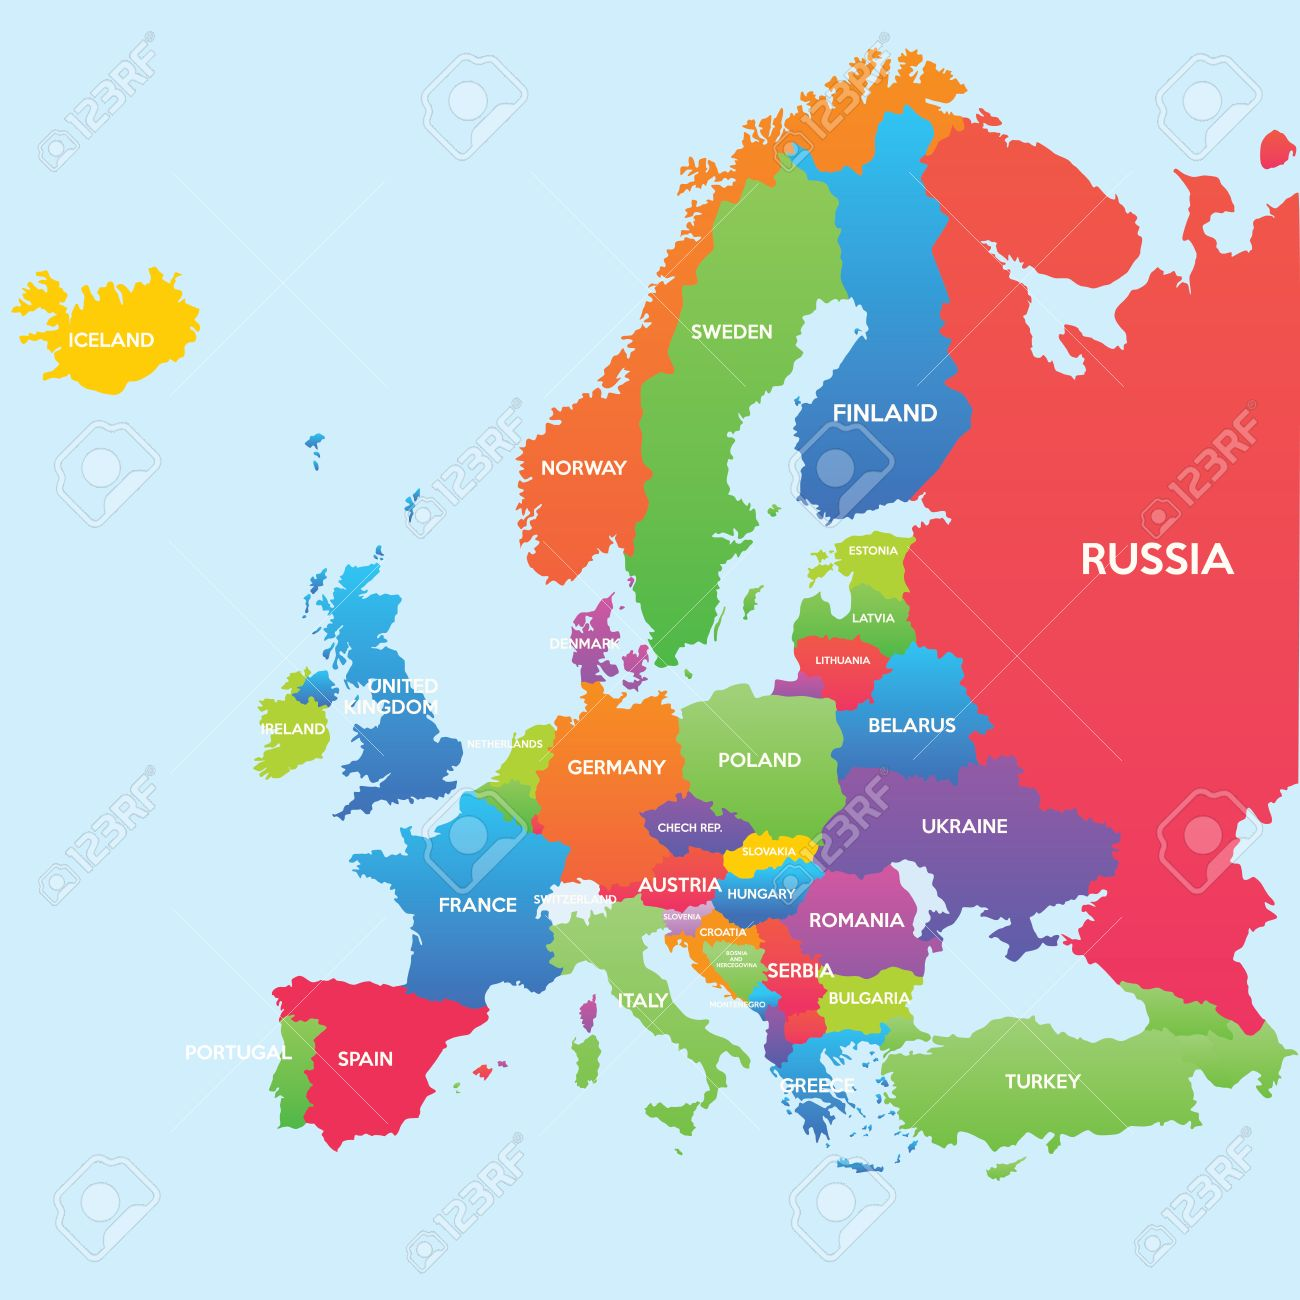 Maps Update 728642 European Countries on World Map Europe Map – Europe Map Countries